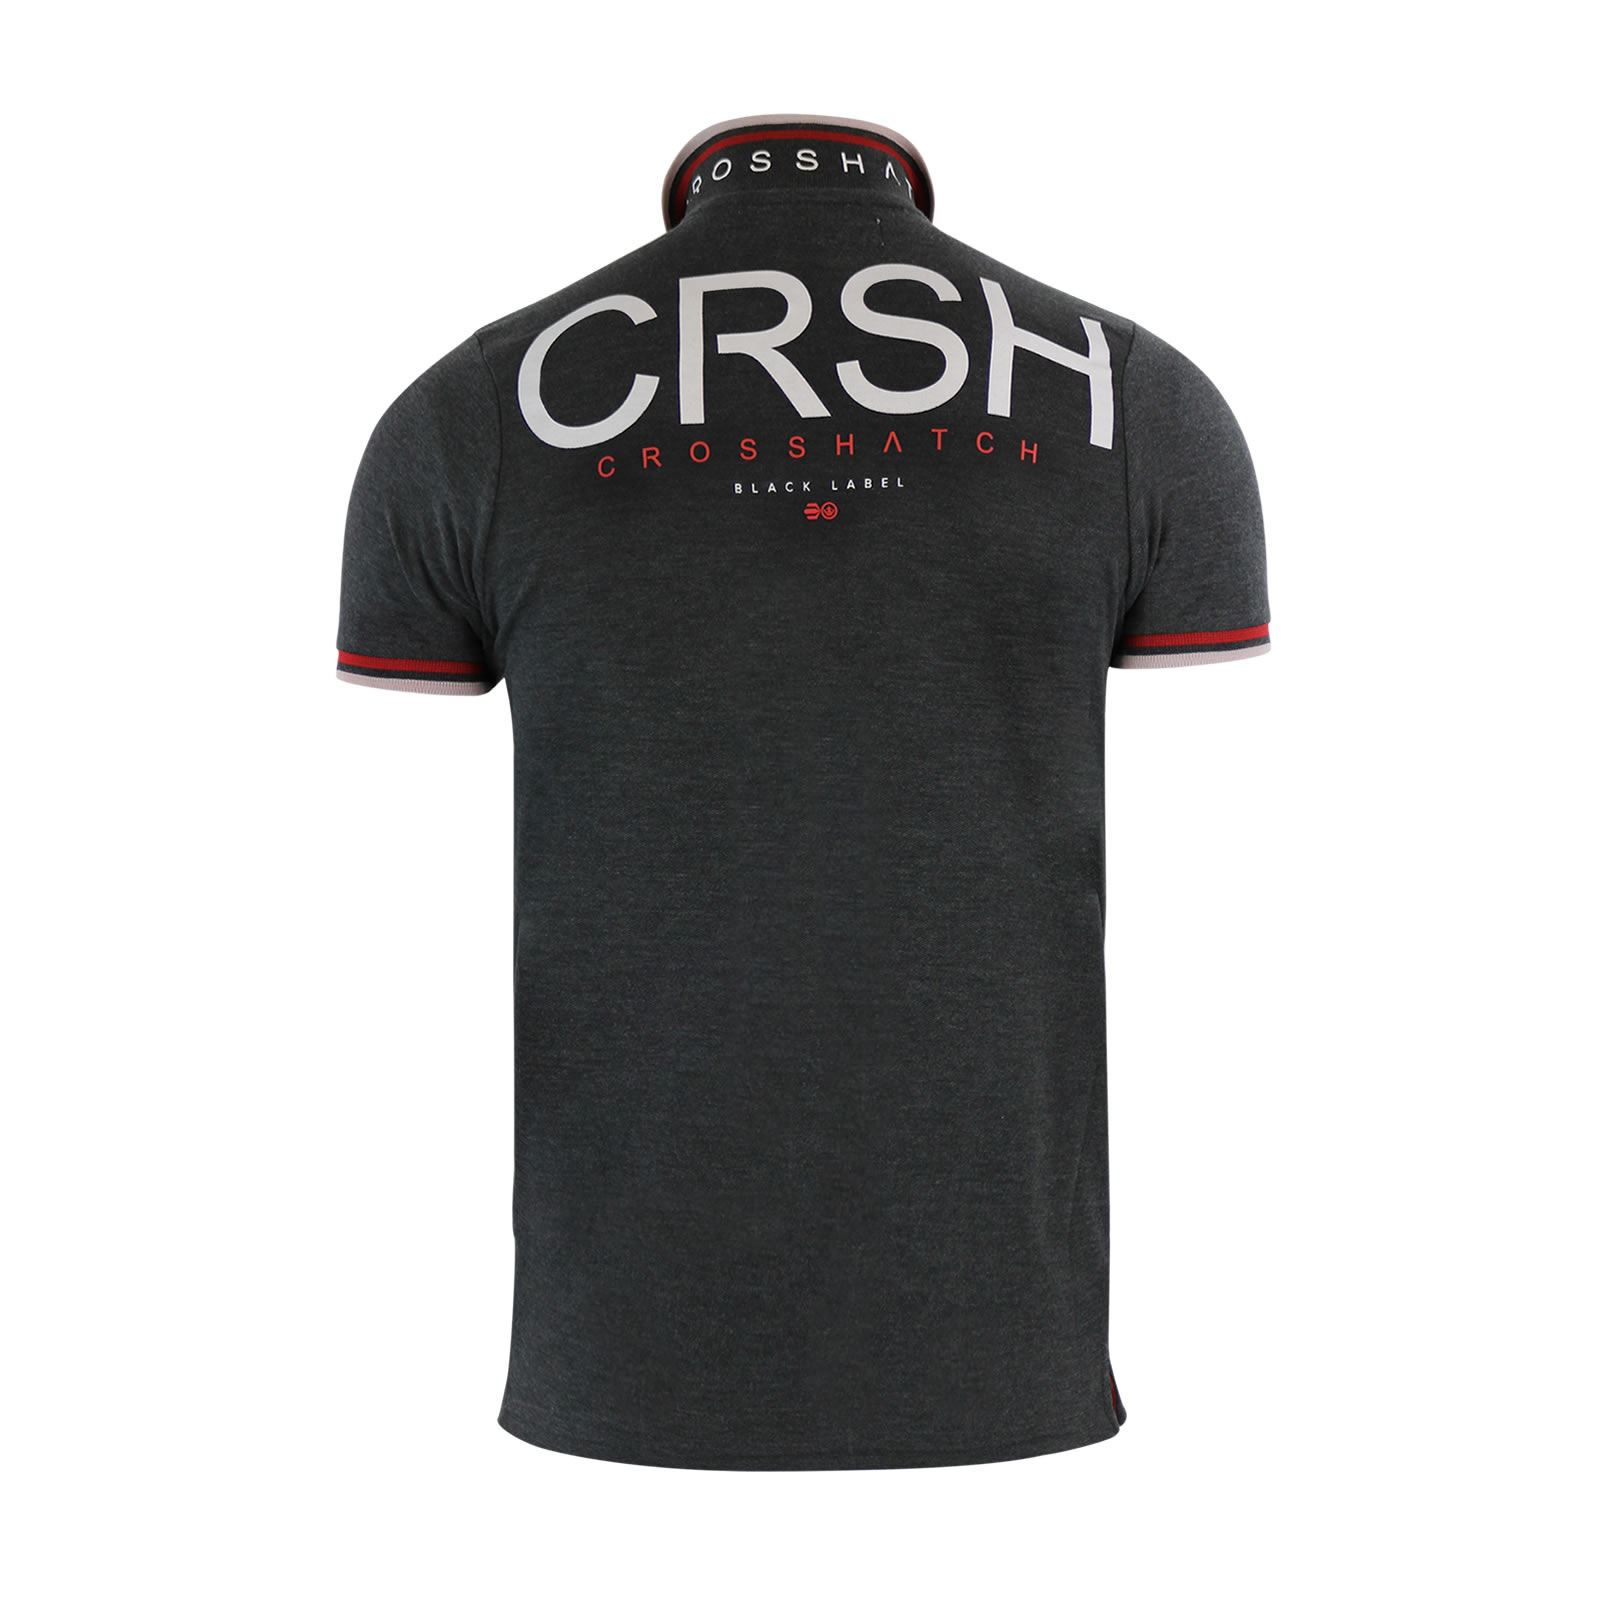 Crosshatch-Mens-Polo-T-Shirt-Pique-Polo-Cotton-Collared-Short-Sleeve-T-Shirt thumbnail 15